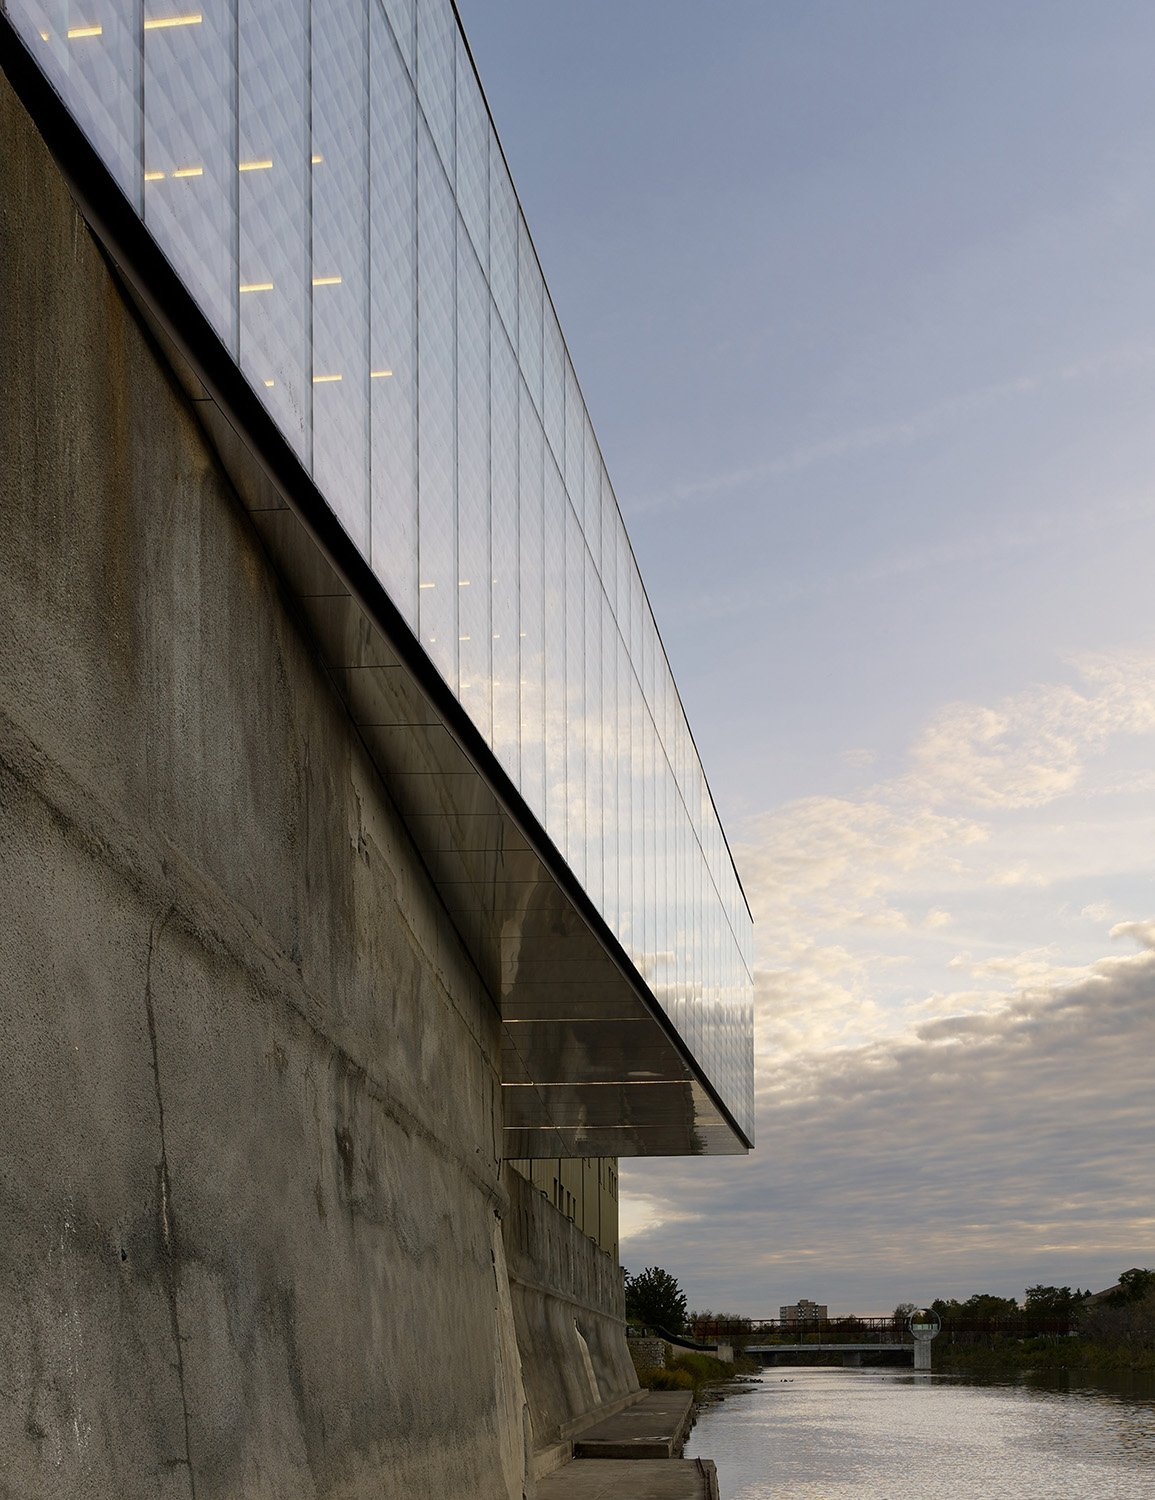 The soffit of the pavilion cantilever is clad with aluminum panels, polished with a mirror-like finish, in anticipation of a future river walk directly below the building. Tom Arban